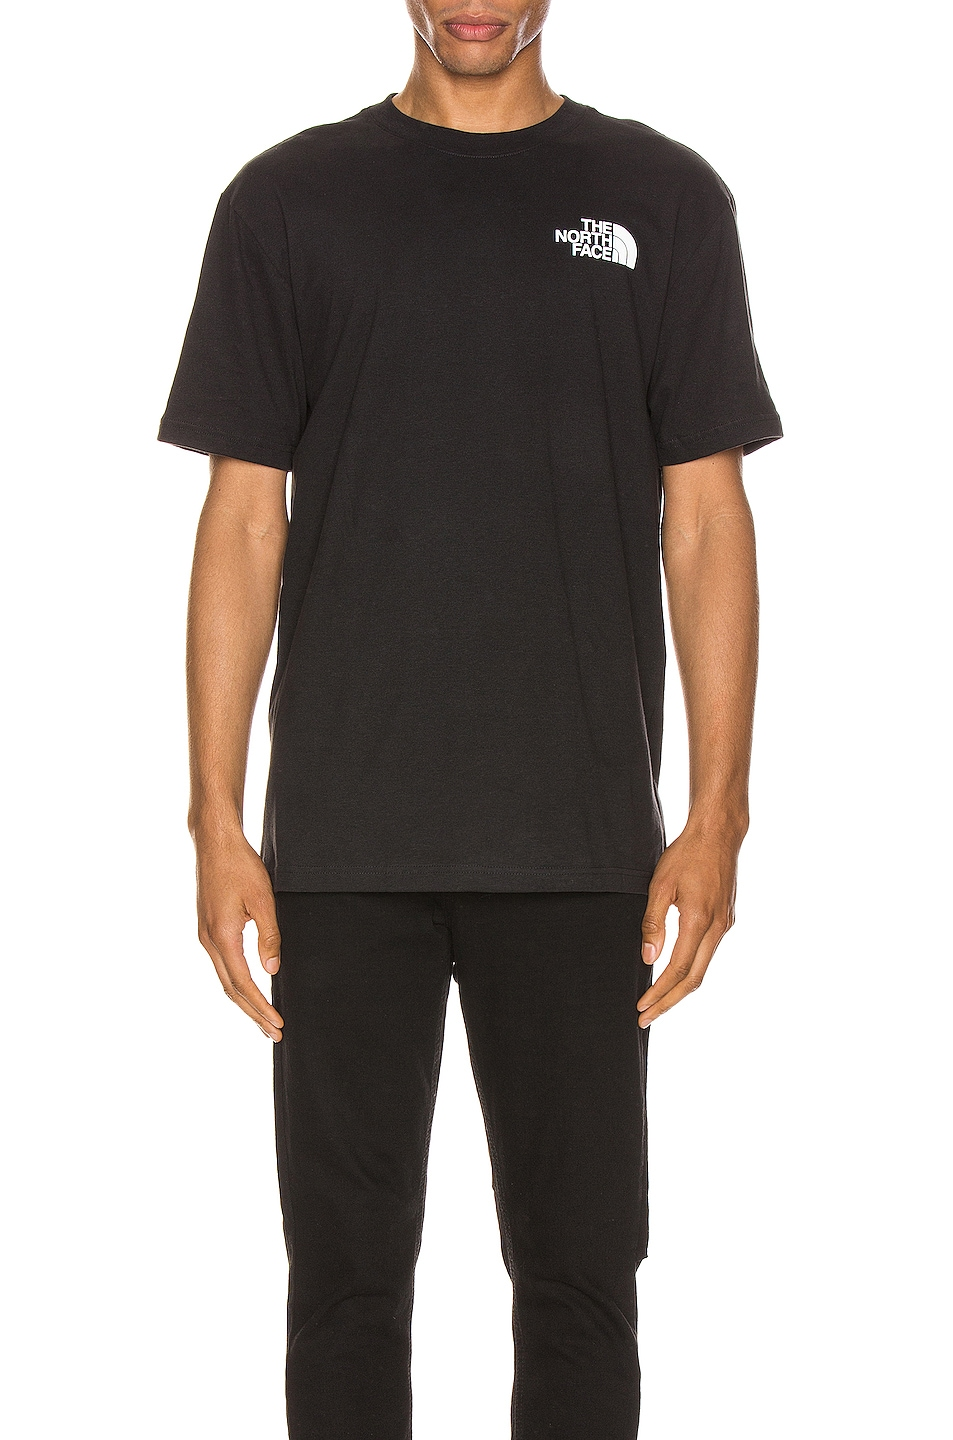 Image 2 of The North Face Red Box Tee in TNF Black